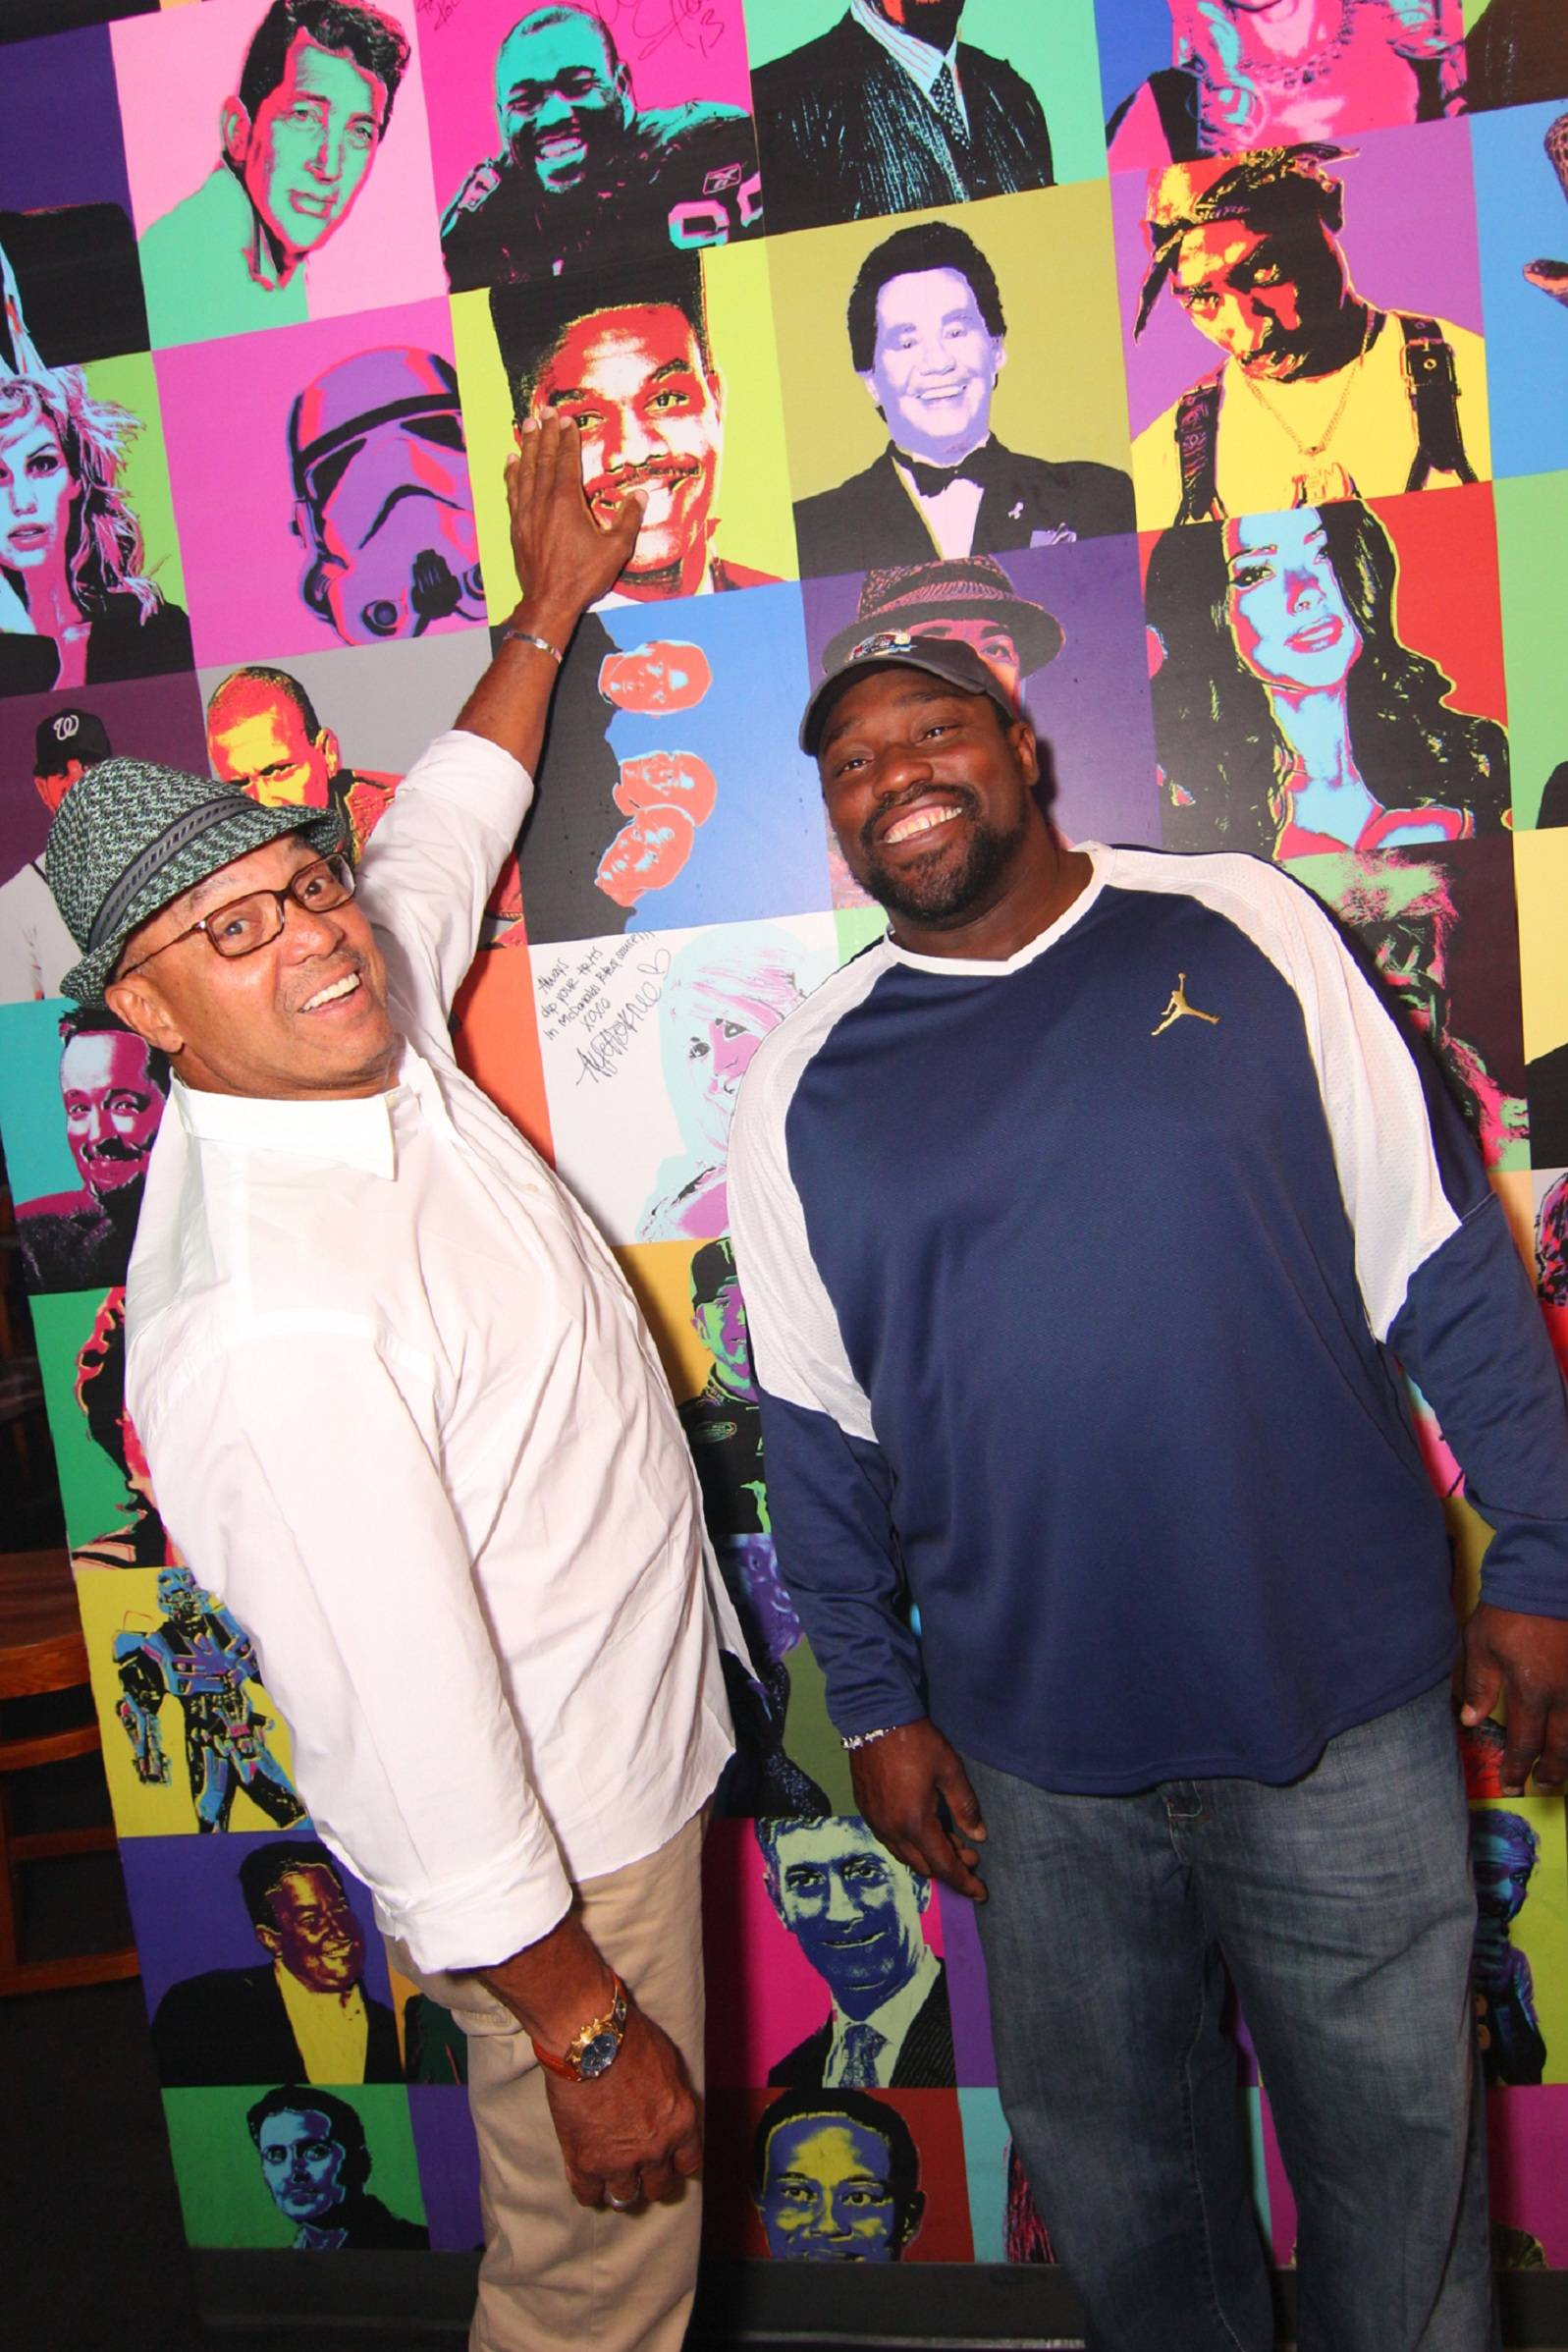 Reggie Jackson and Warren Sapp Sign Celebrity Wall at Rockhouse